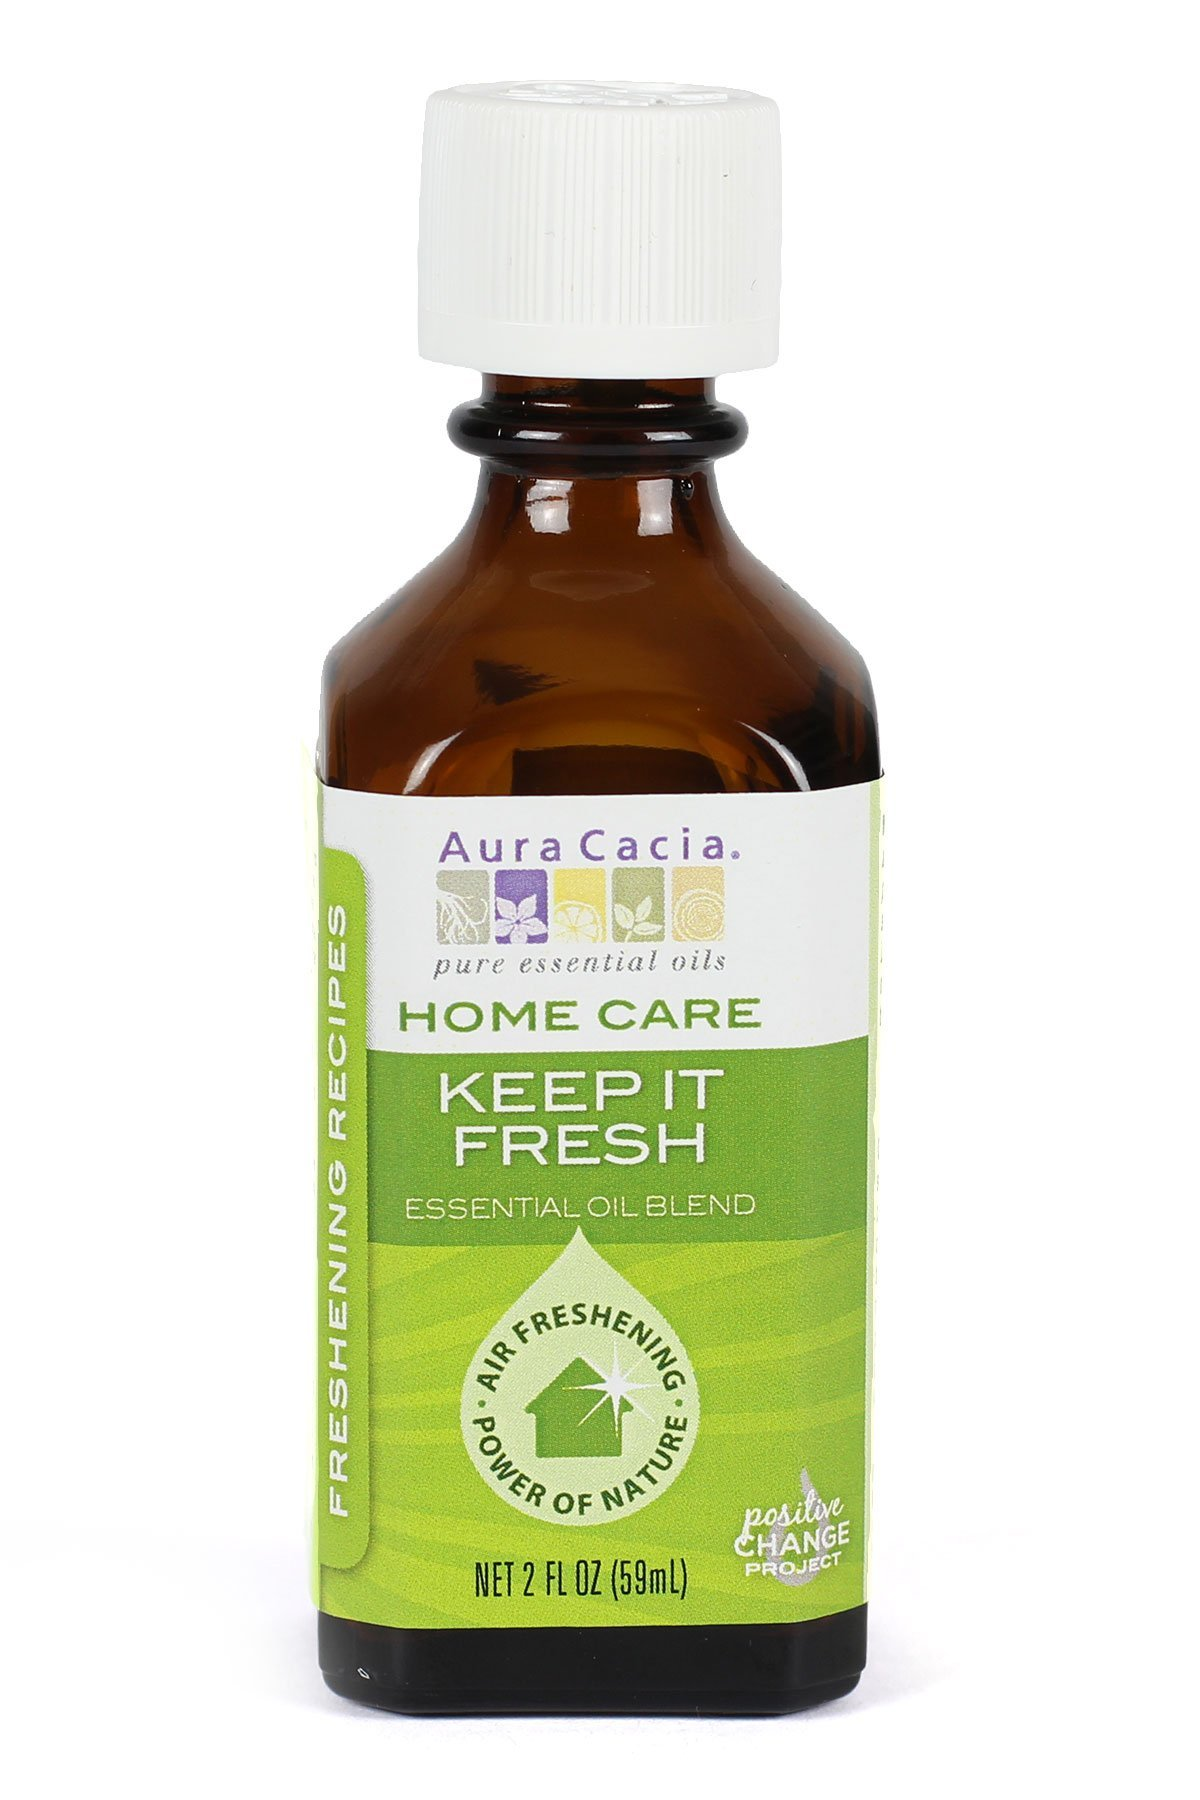 Aura Cacia Keep it Fresh Essential Oil Blend for Home Care, 2 Fluid Ounce by Aura Cacia (Image #1)